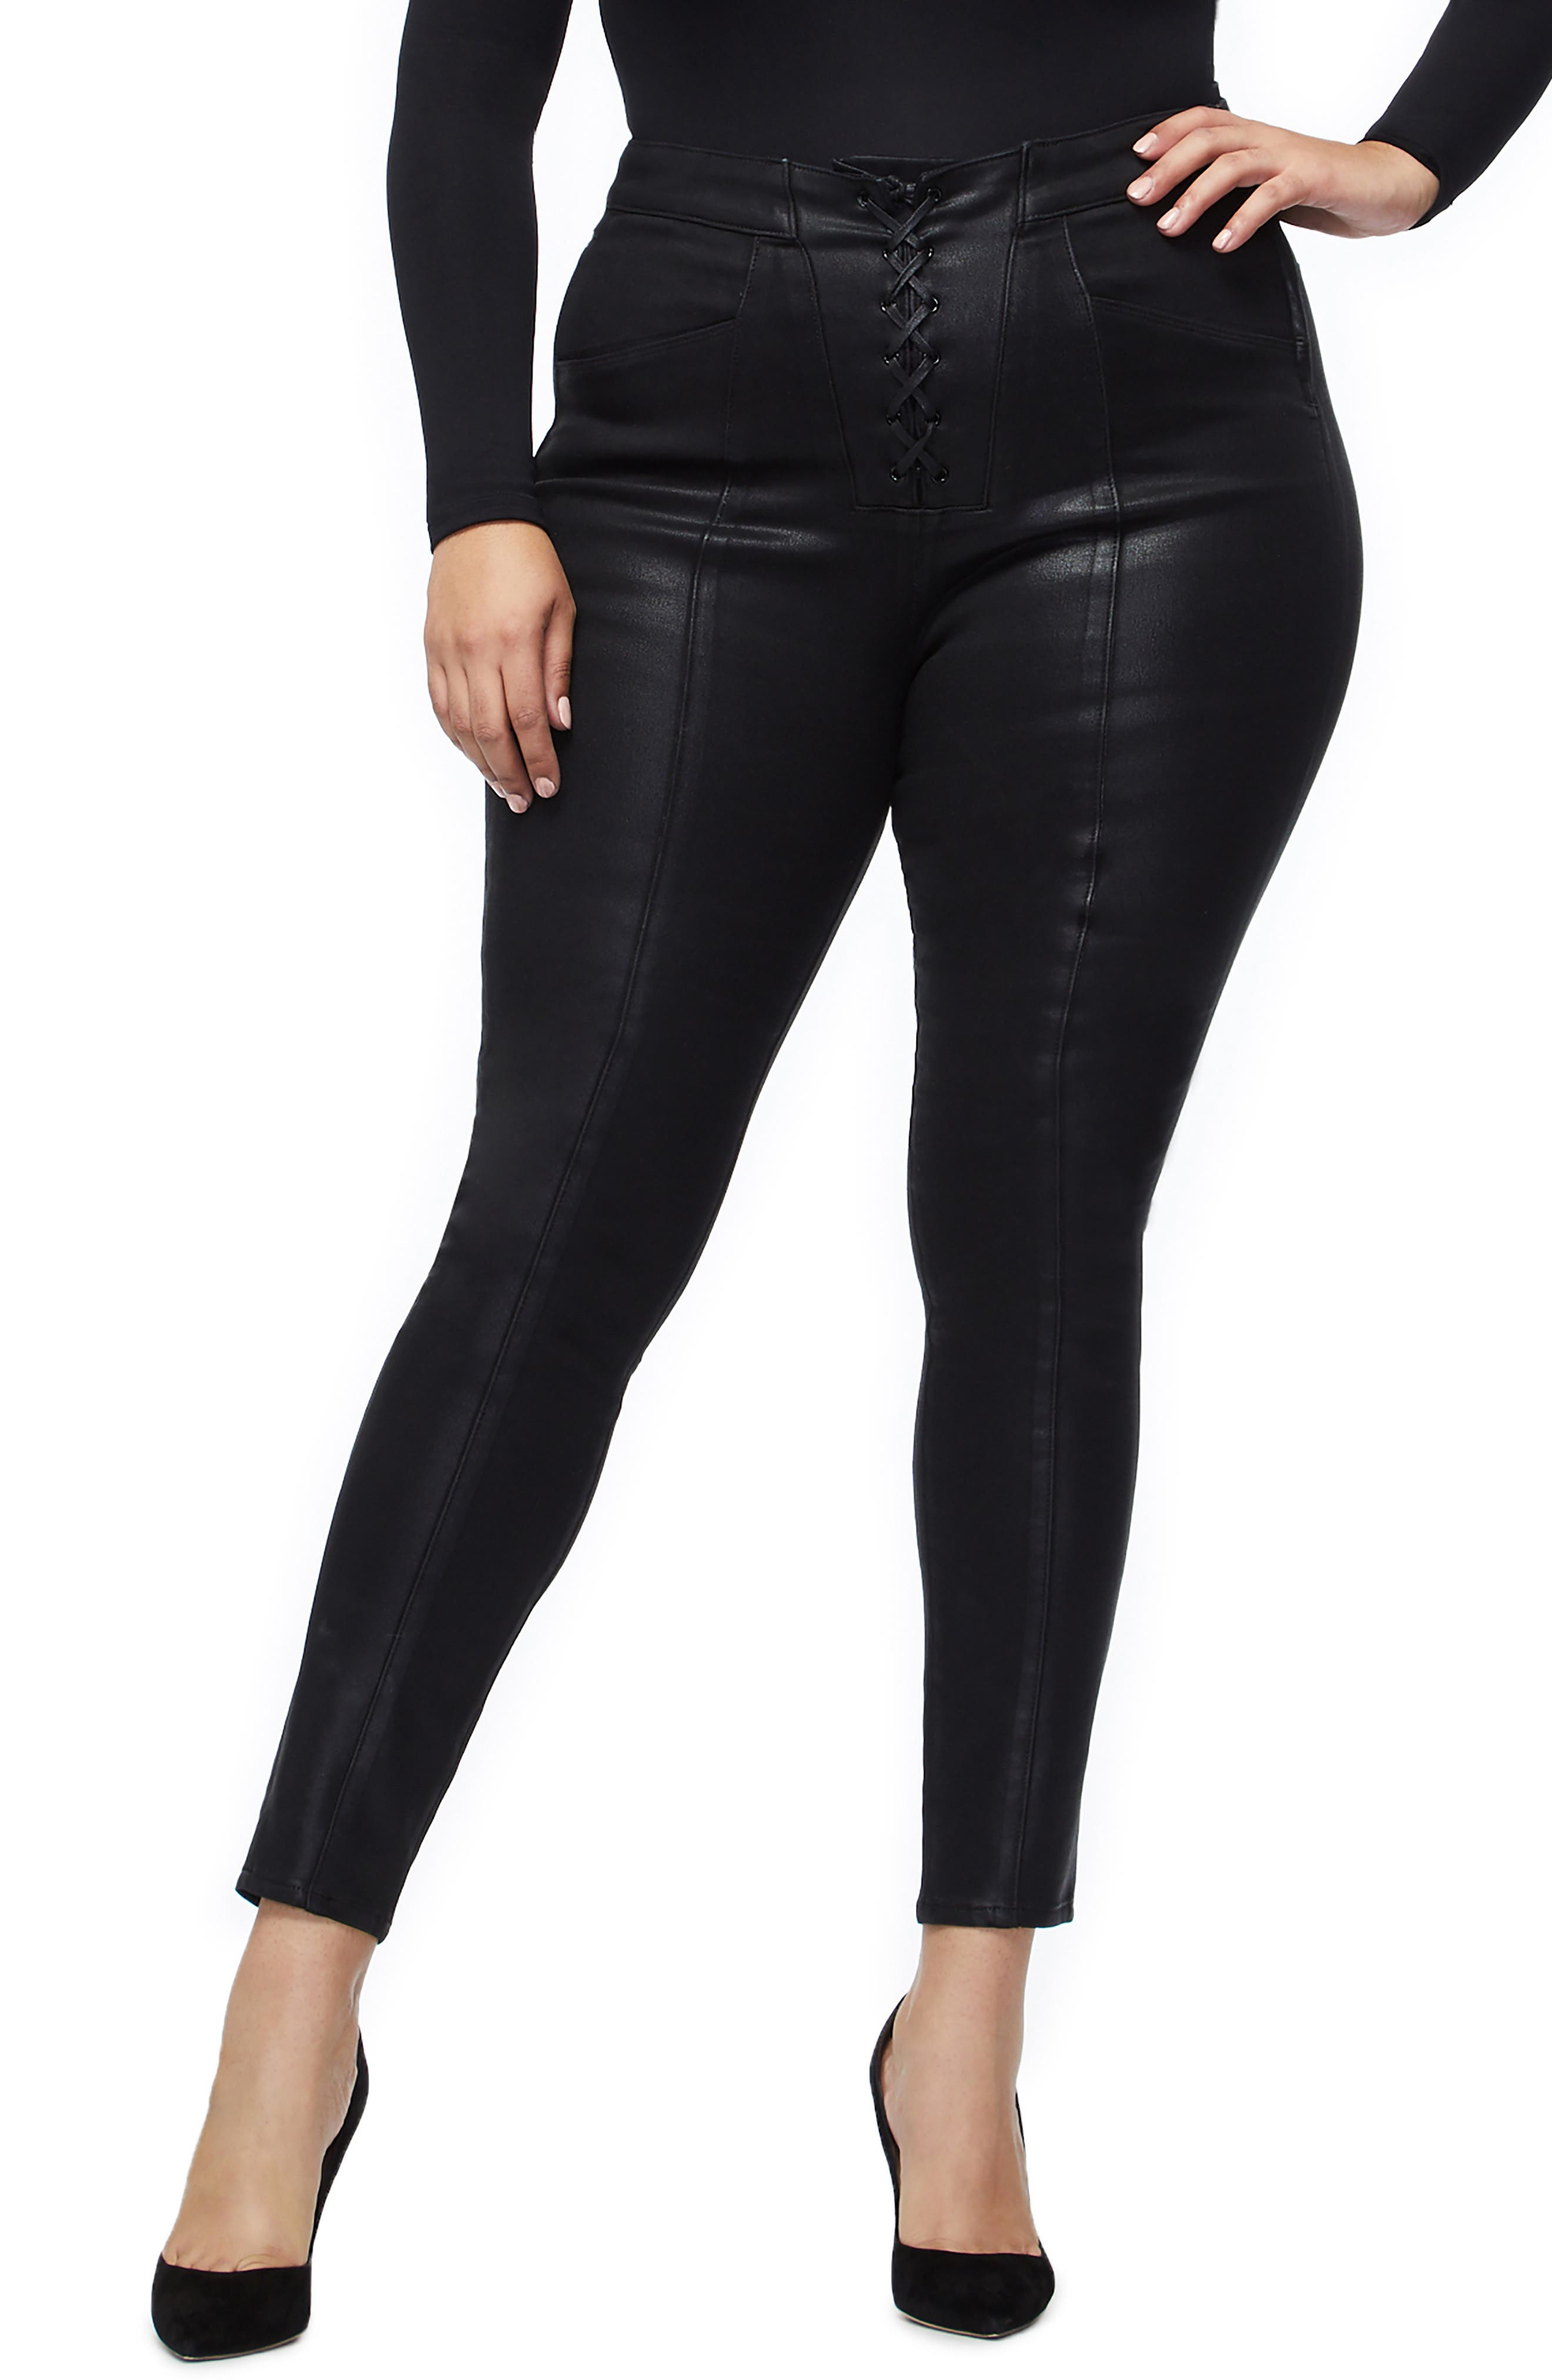 Coated Lace-Up High Waist Skinny Jeans,                             Alternate thumbnail 2, color,                             BLACK034